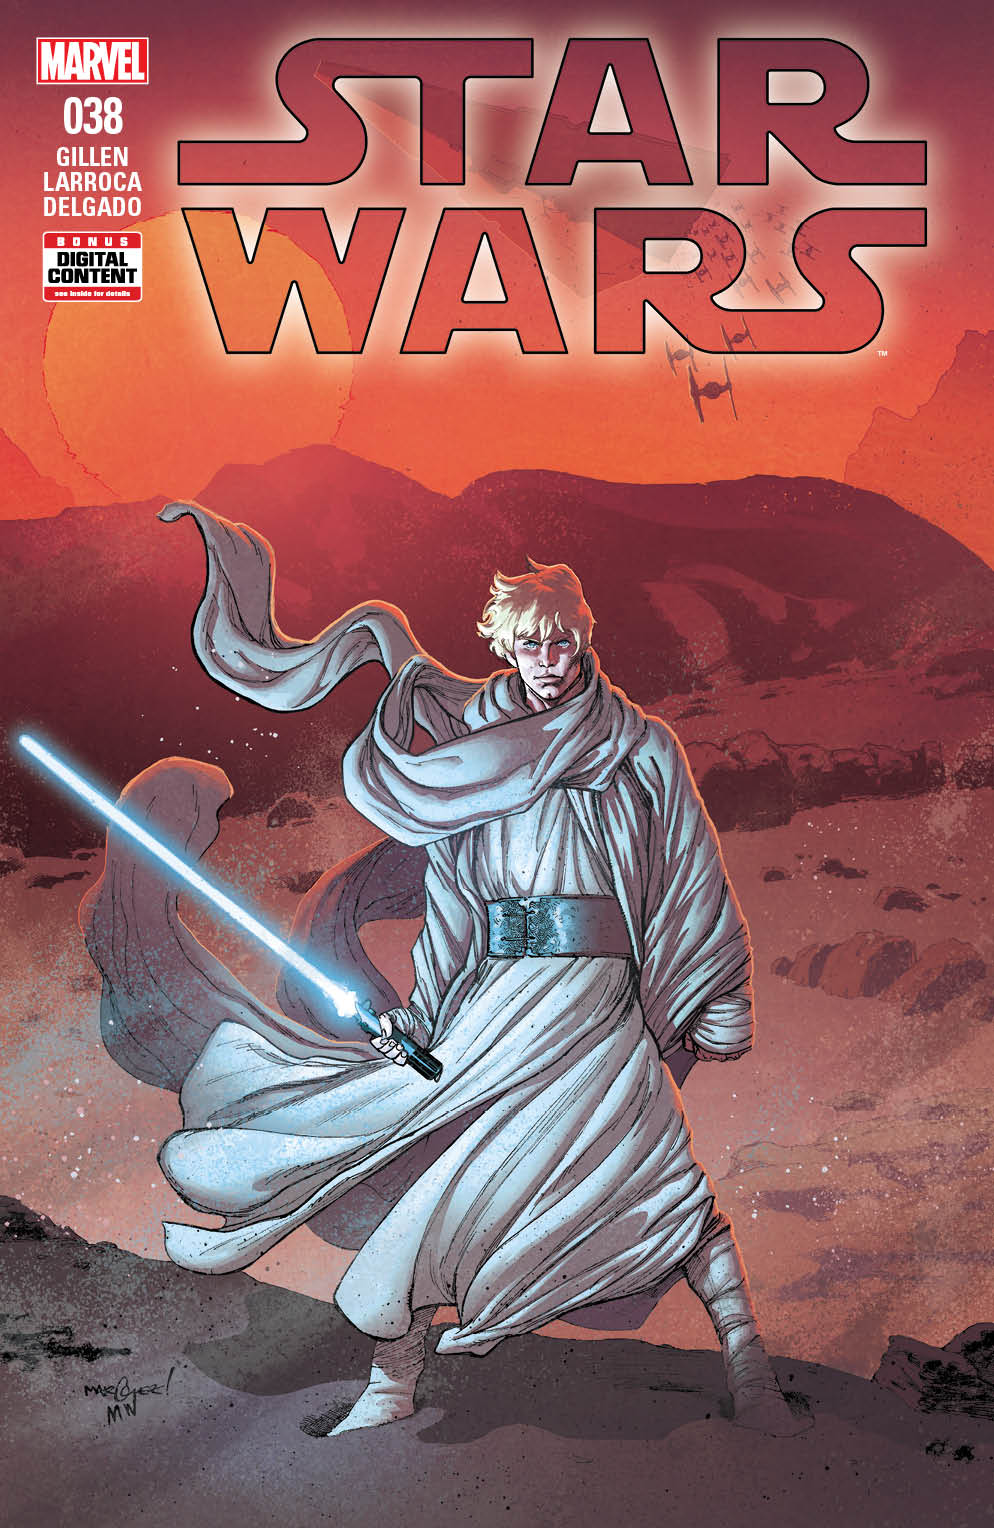 Kieron Gillen Takes Over Flagship Star Wars Book This Fall